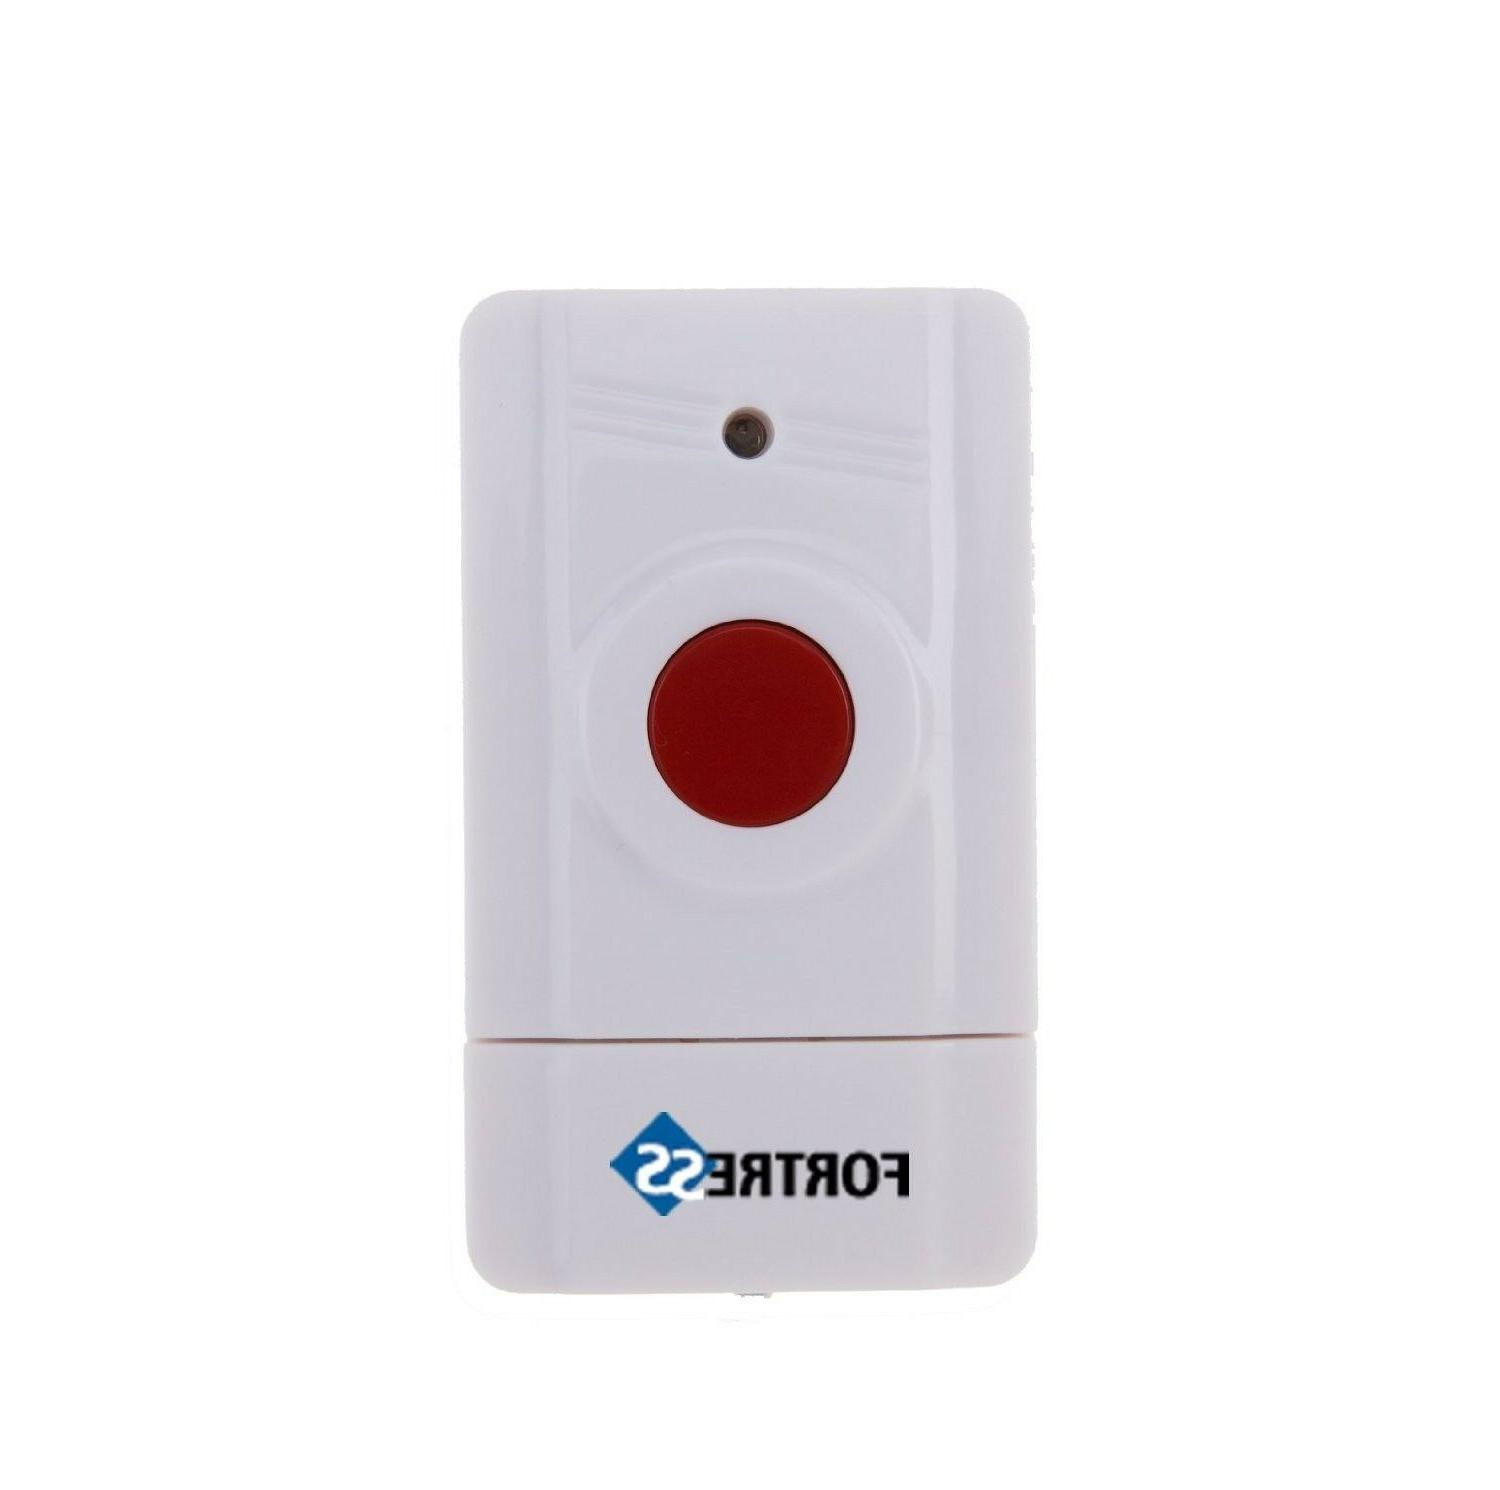 Fortress Security Alarm System Override Panic Button S02 GSM